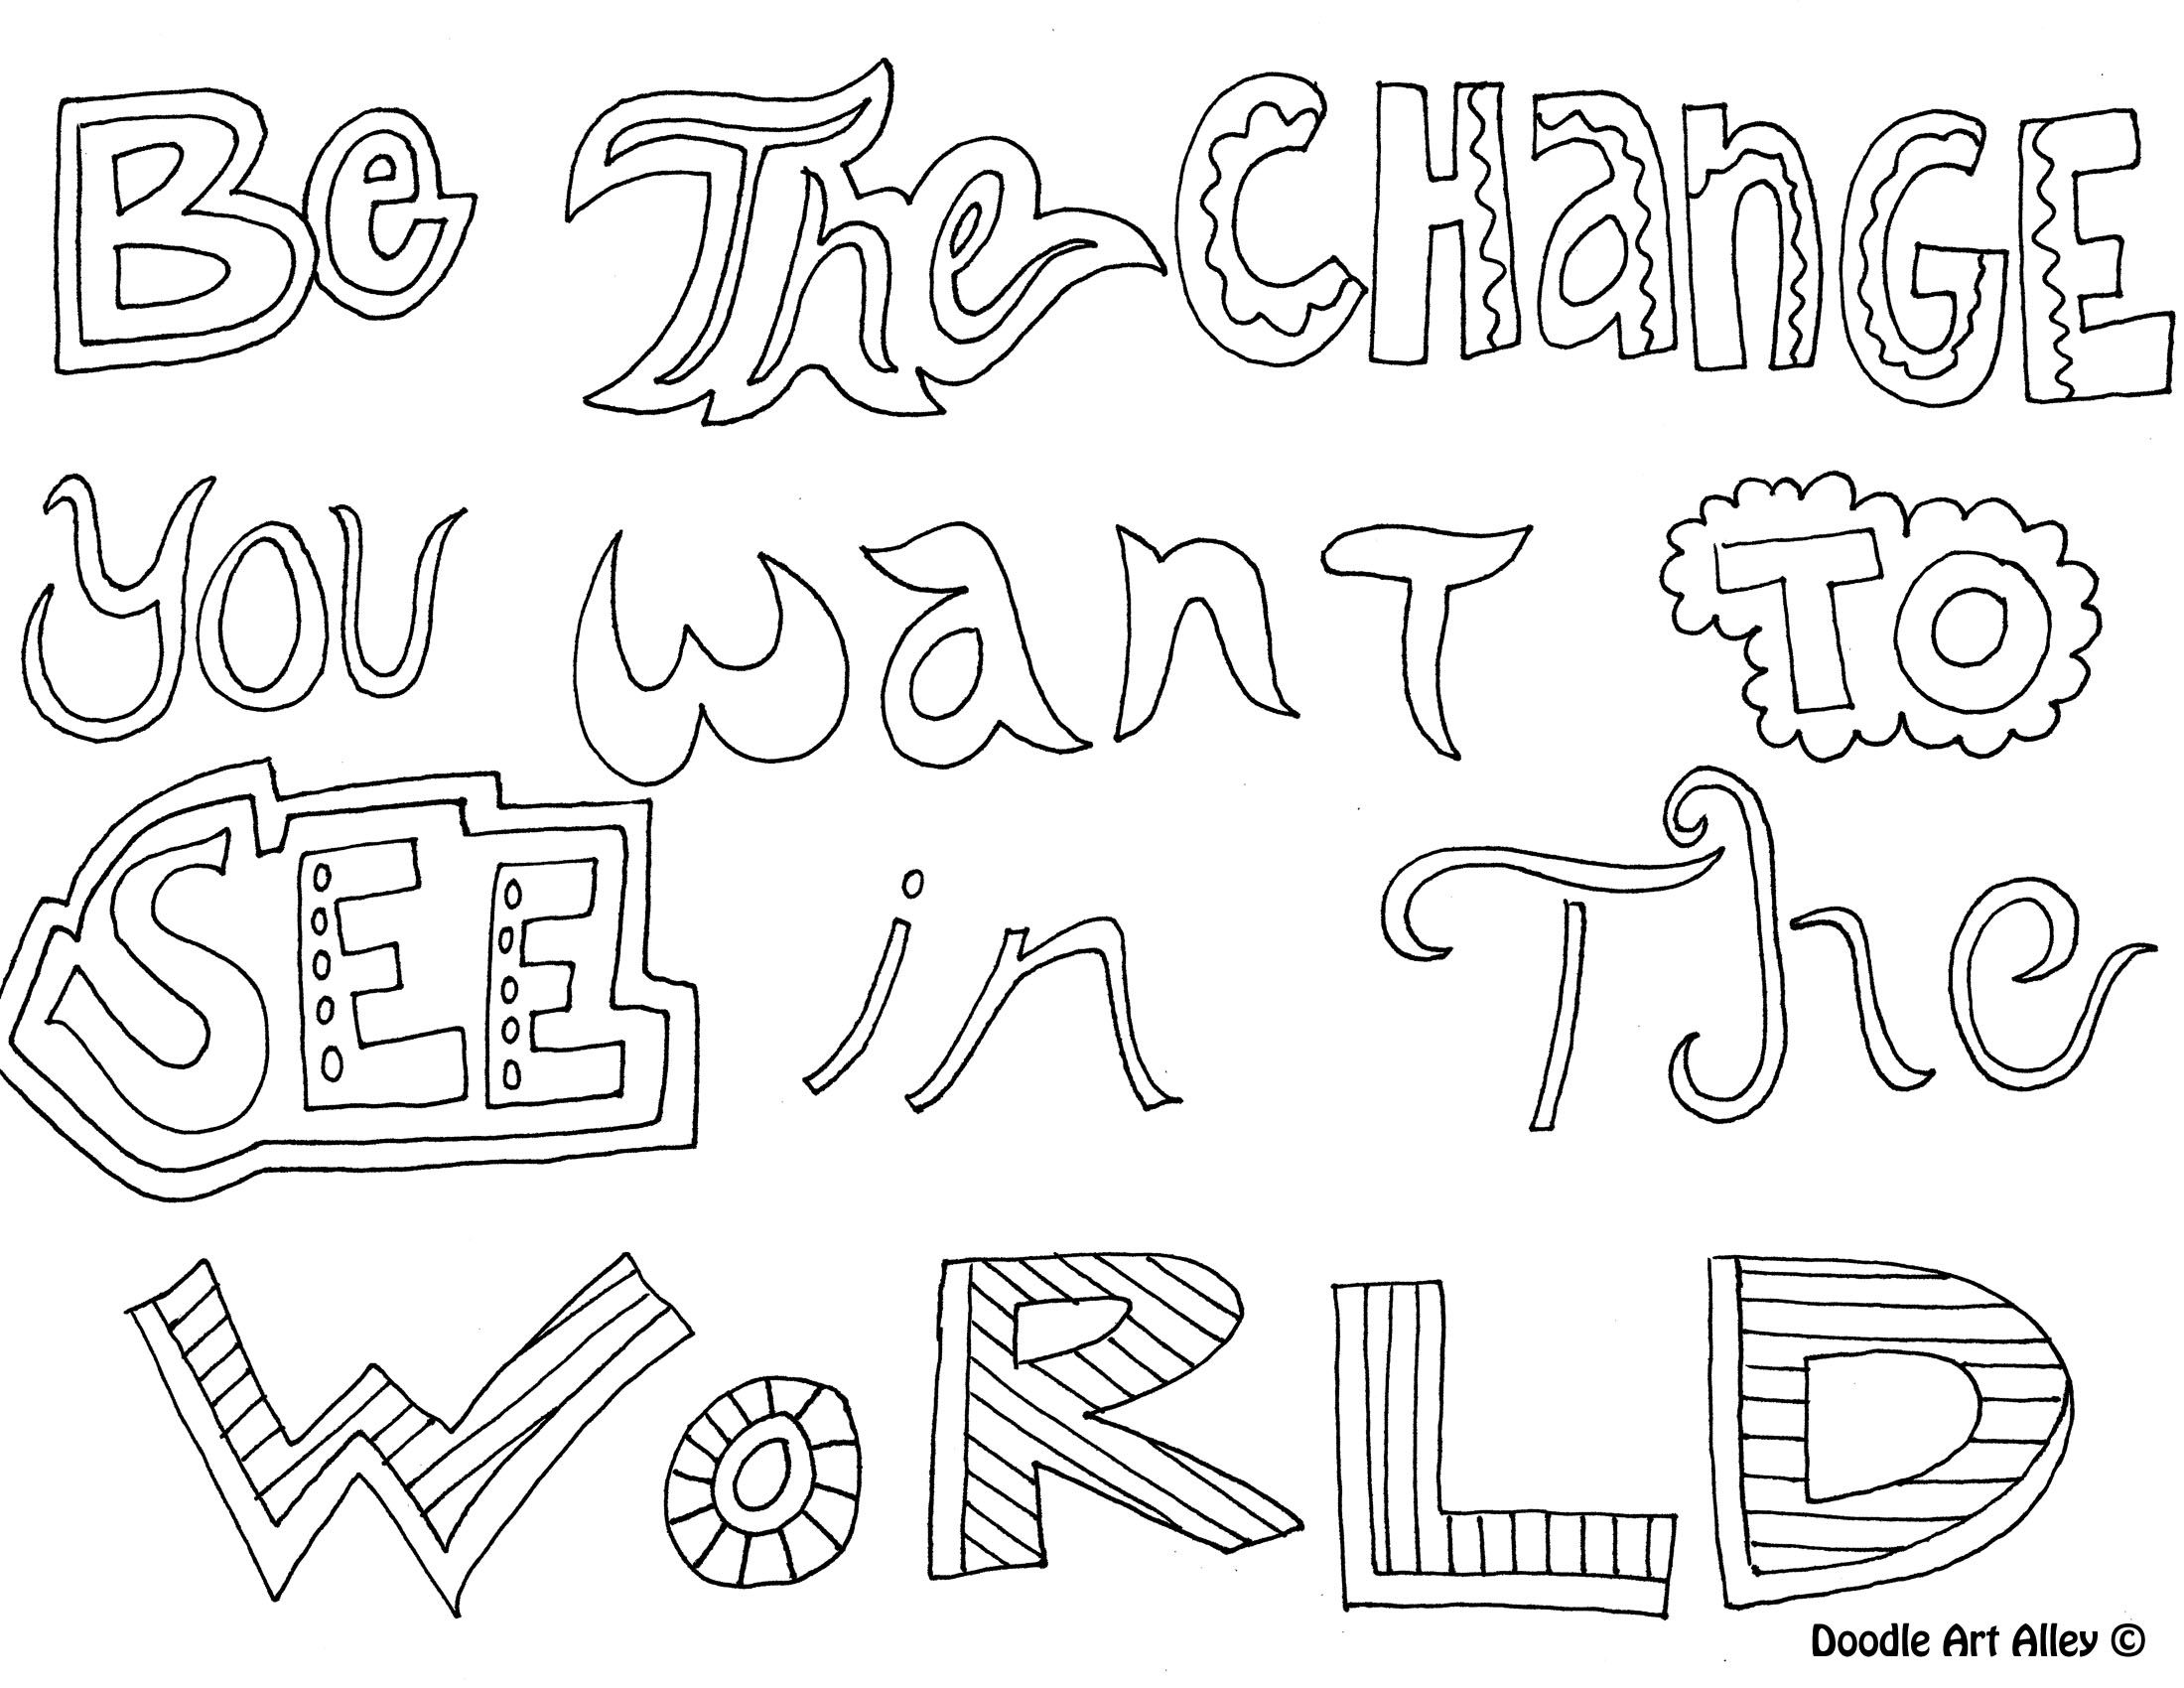 Printable coloring pages love - Love Quotes Coloring Pages For Teenagers